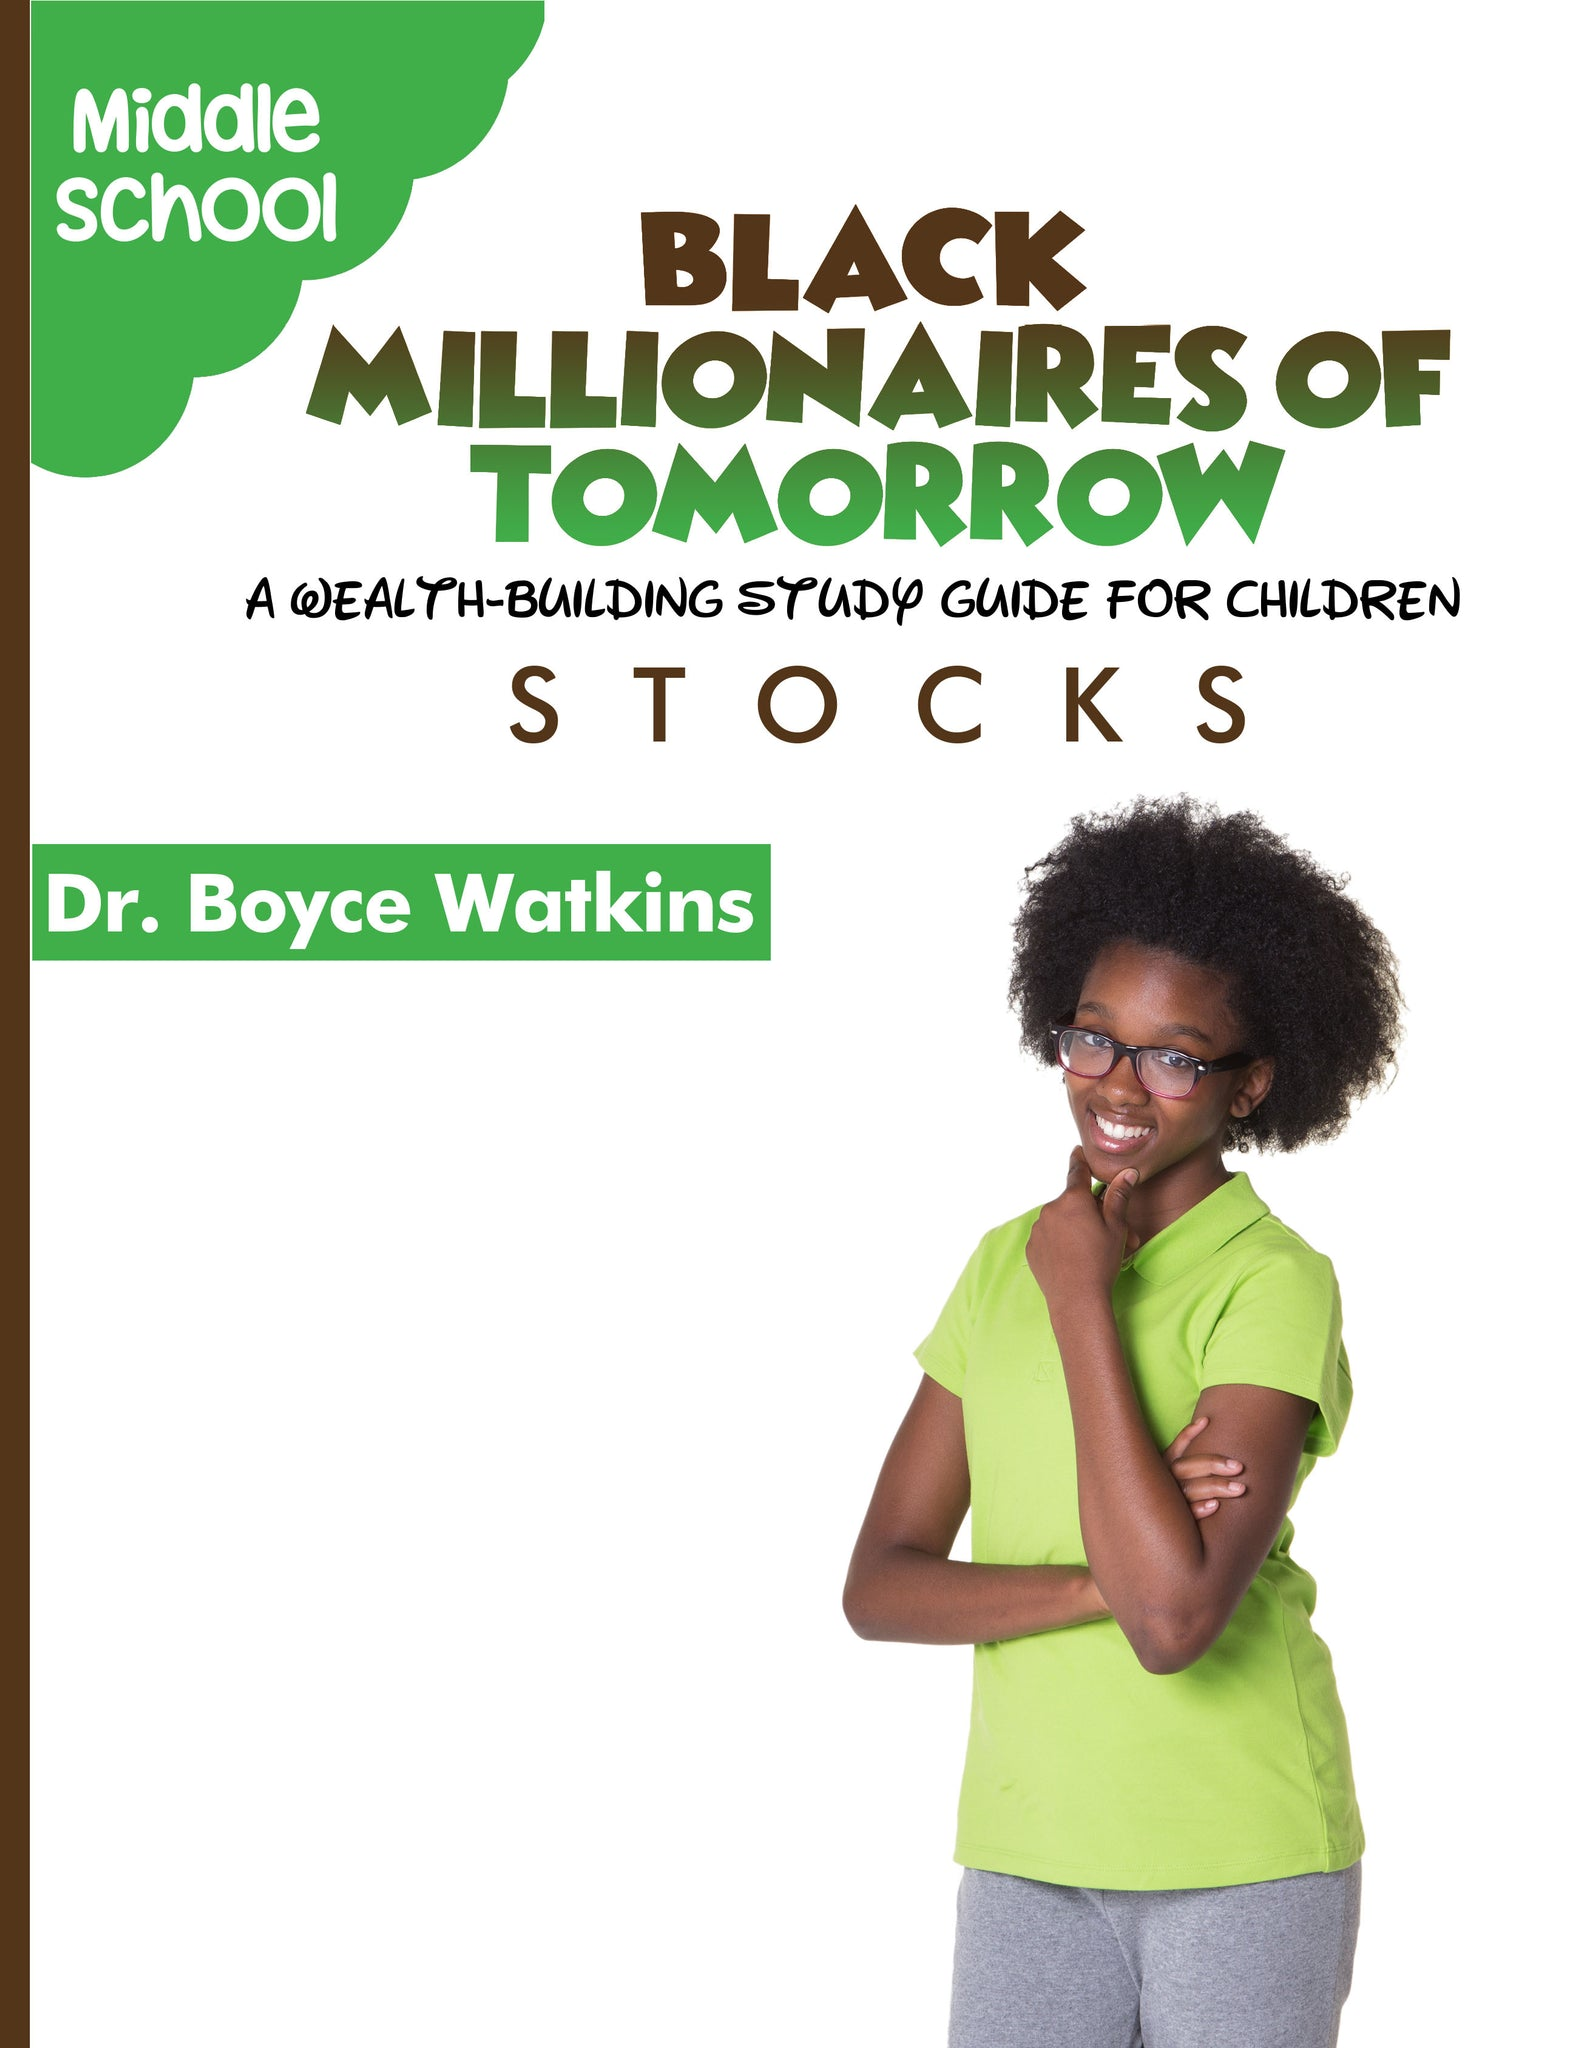 The Black Millionaires of Tomorrow Workbook (Middleschool) - Stocks